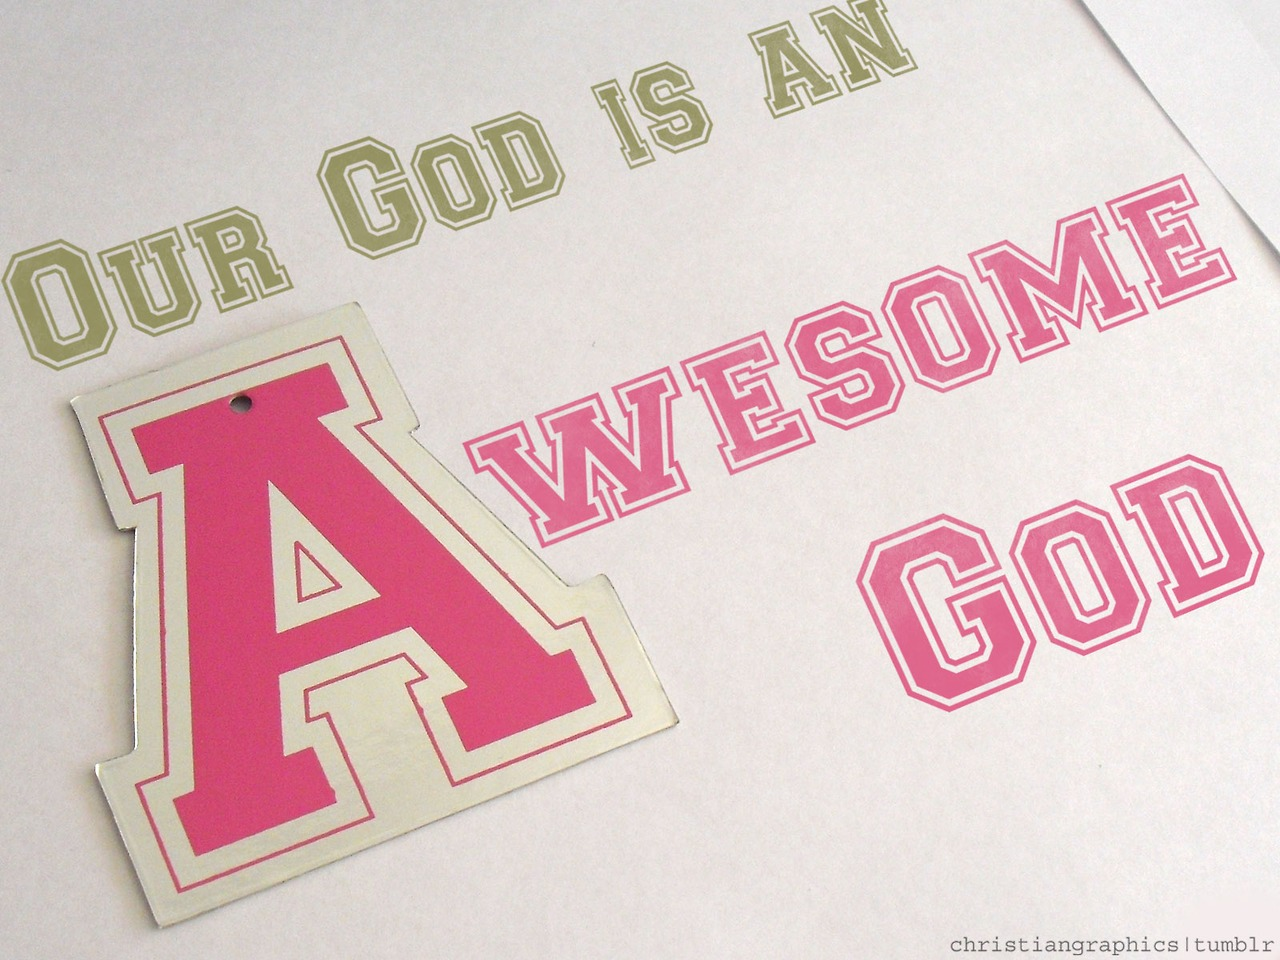 Our God Is An Awesome God Hd Wallpaper - Pink God Quotes Desktop - HD Wallpaper